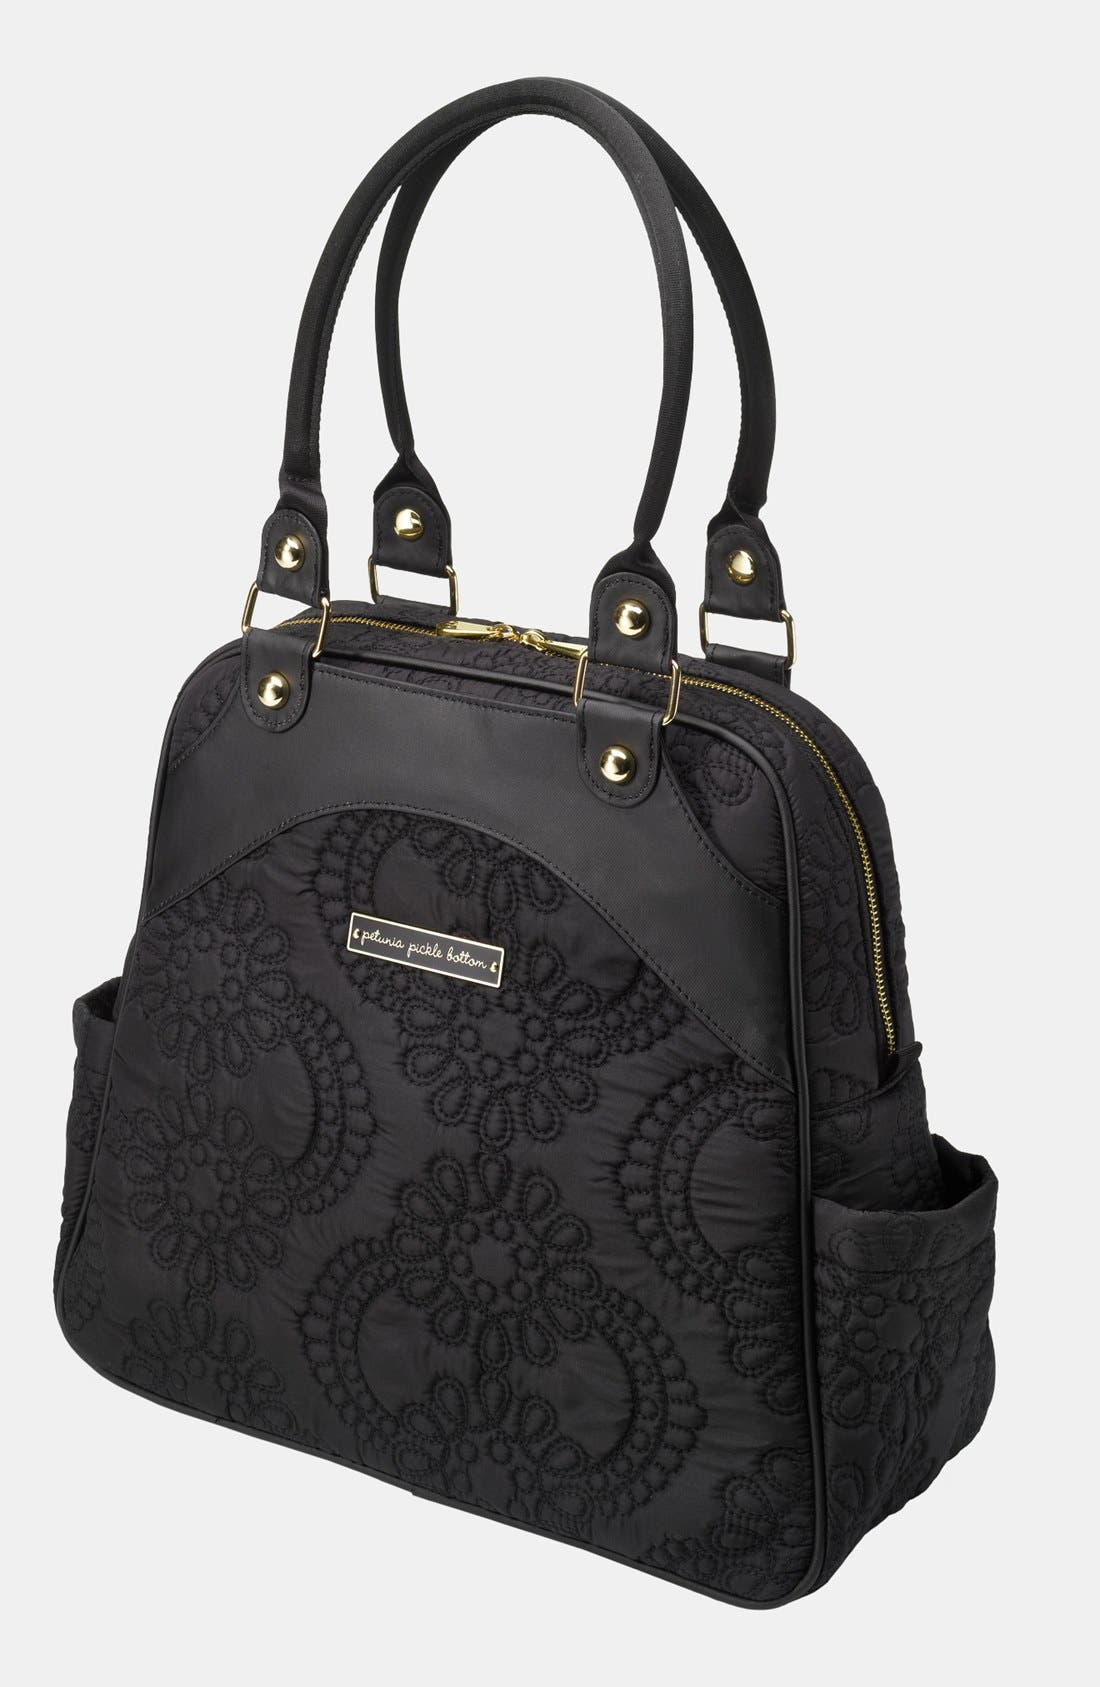 'Embossed Sashay' Diaper Bag,                         Main,                         color, Central Park North Stop